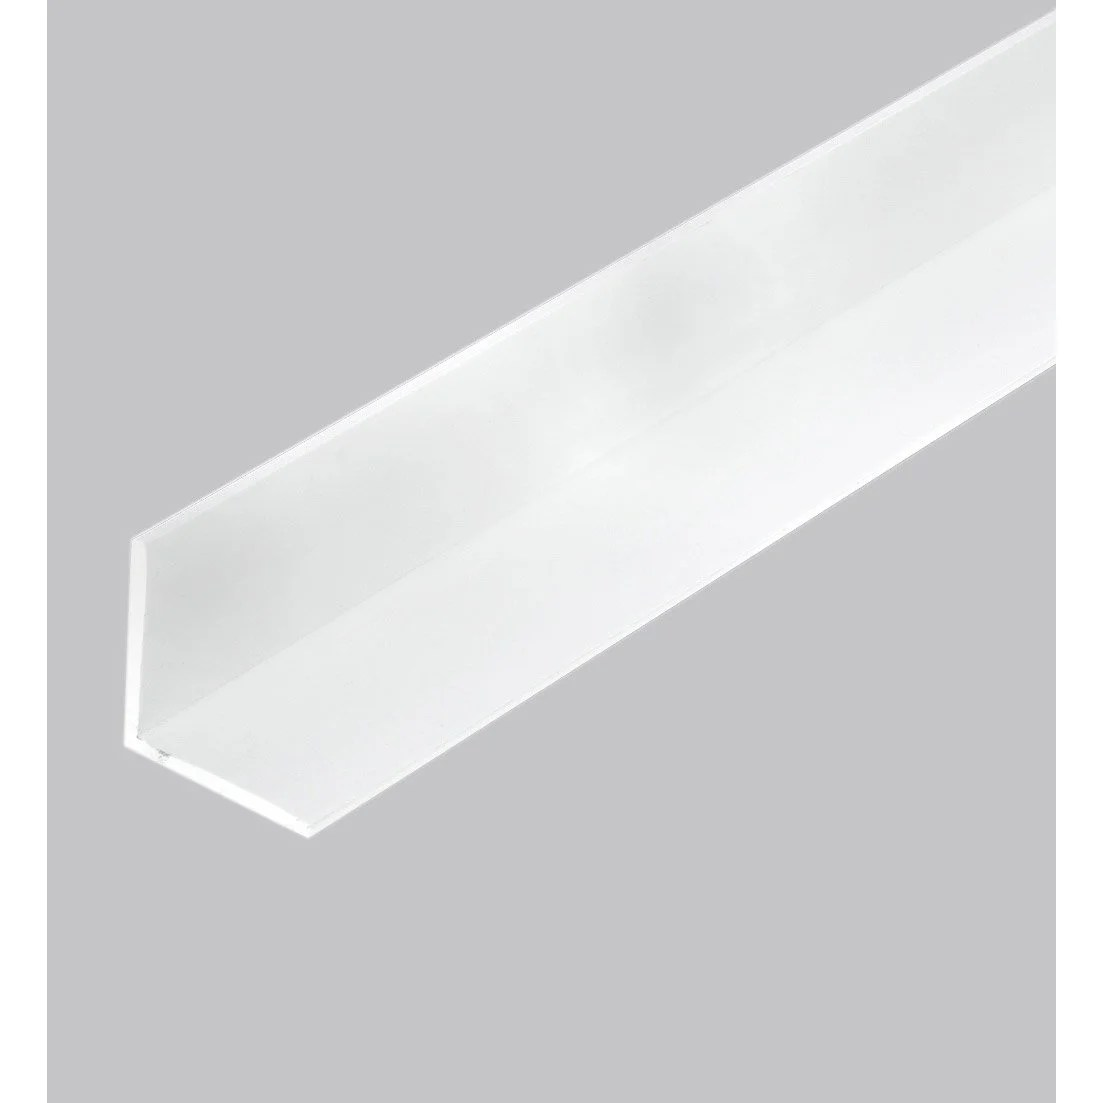 Gelcoat De Finition Leroy Merlin Cornière Pvc Blanc 100 X 100 Mm L 2 6 M Leroy Merlin